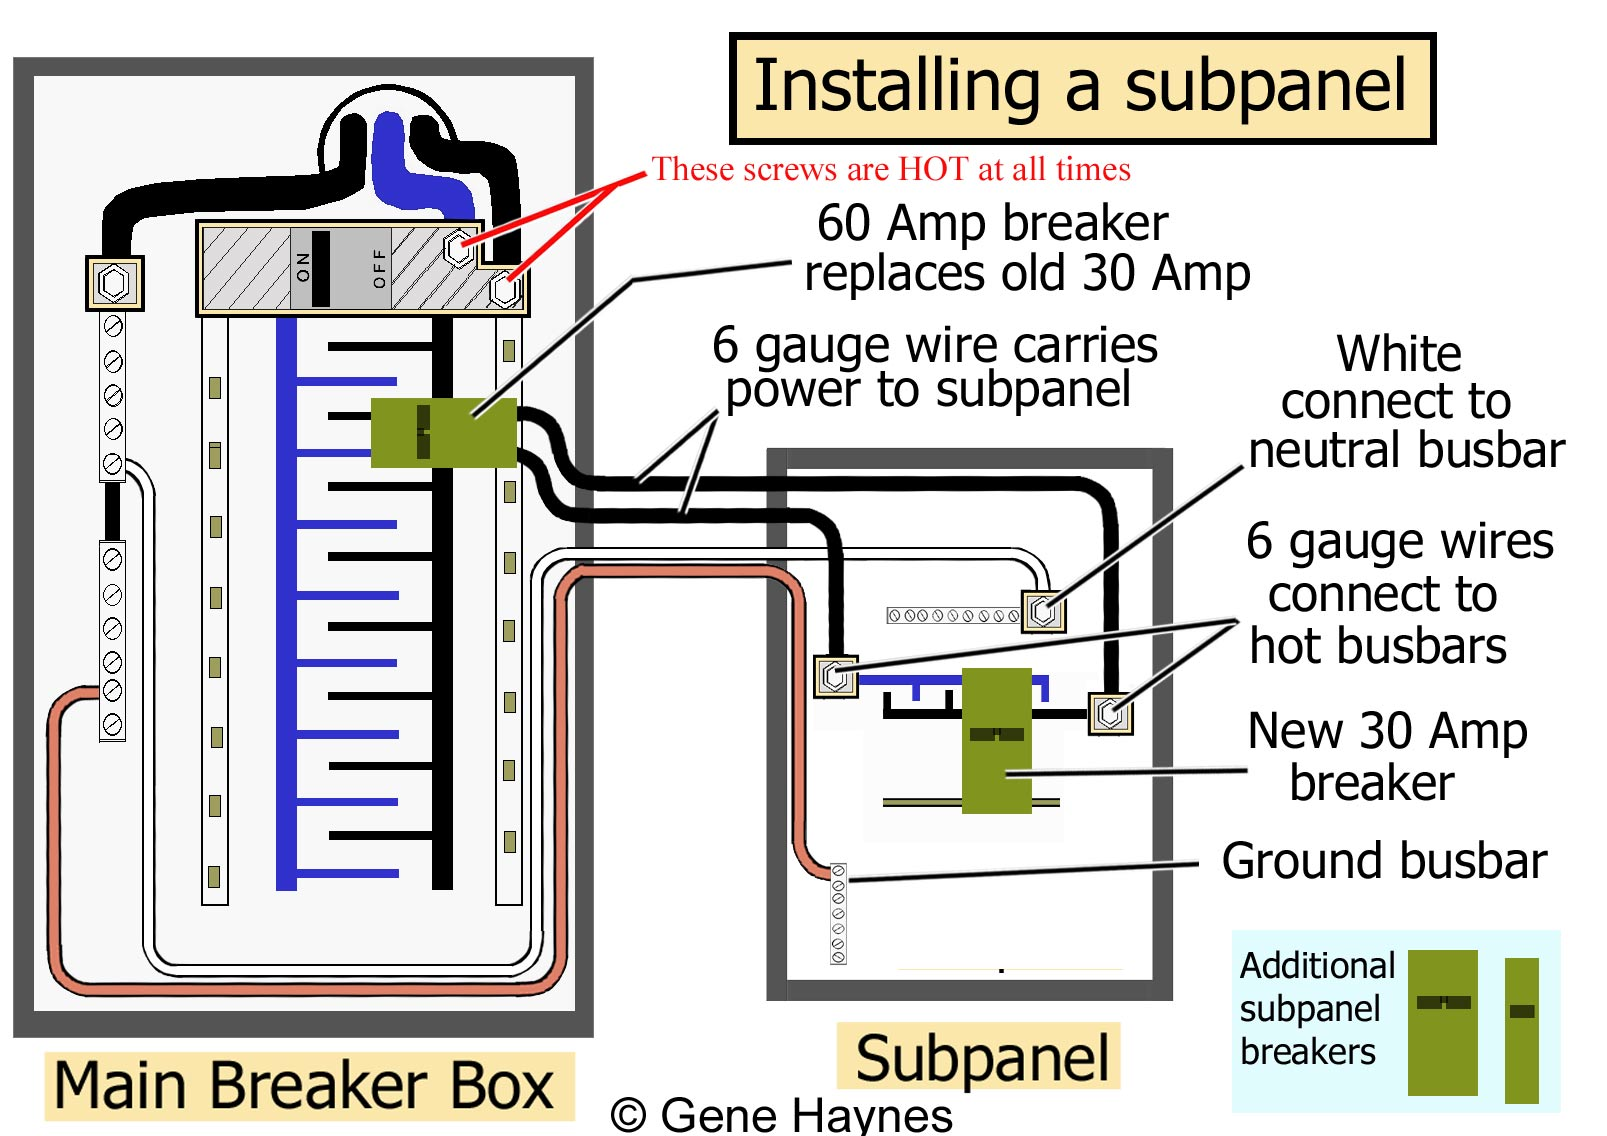 wiring a subpanel data schematics wiring diagram \u2022 sub panel installation diagram how to install a subpanel how to install main lug rh waterheatertimer org wiring a subpanel in a detached garage wiring a subpanel in basement